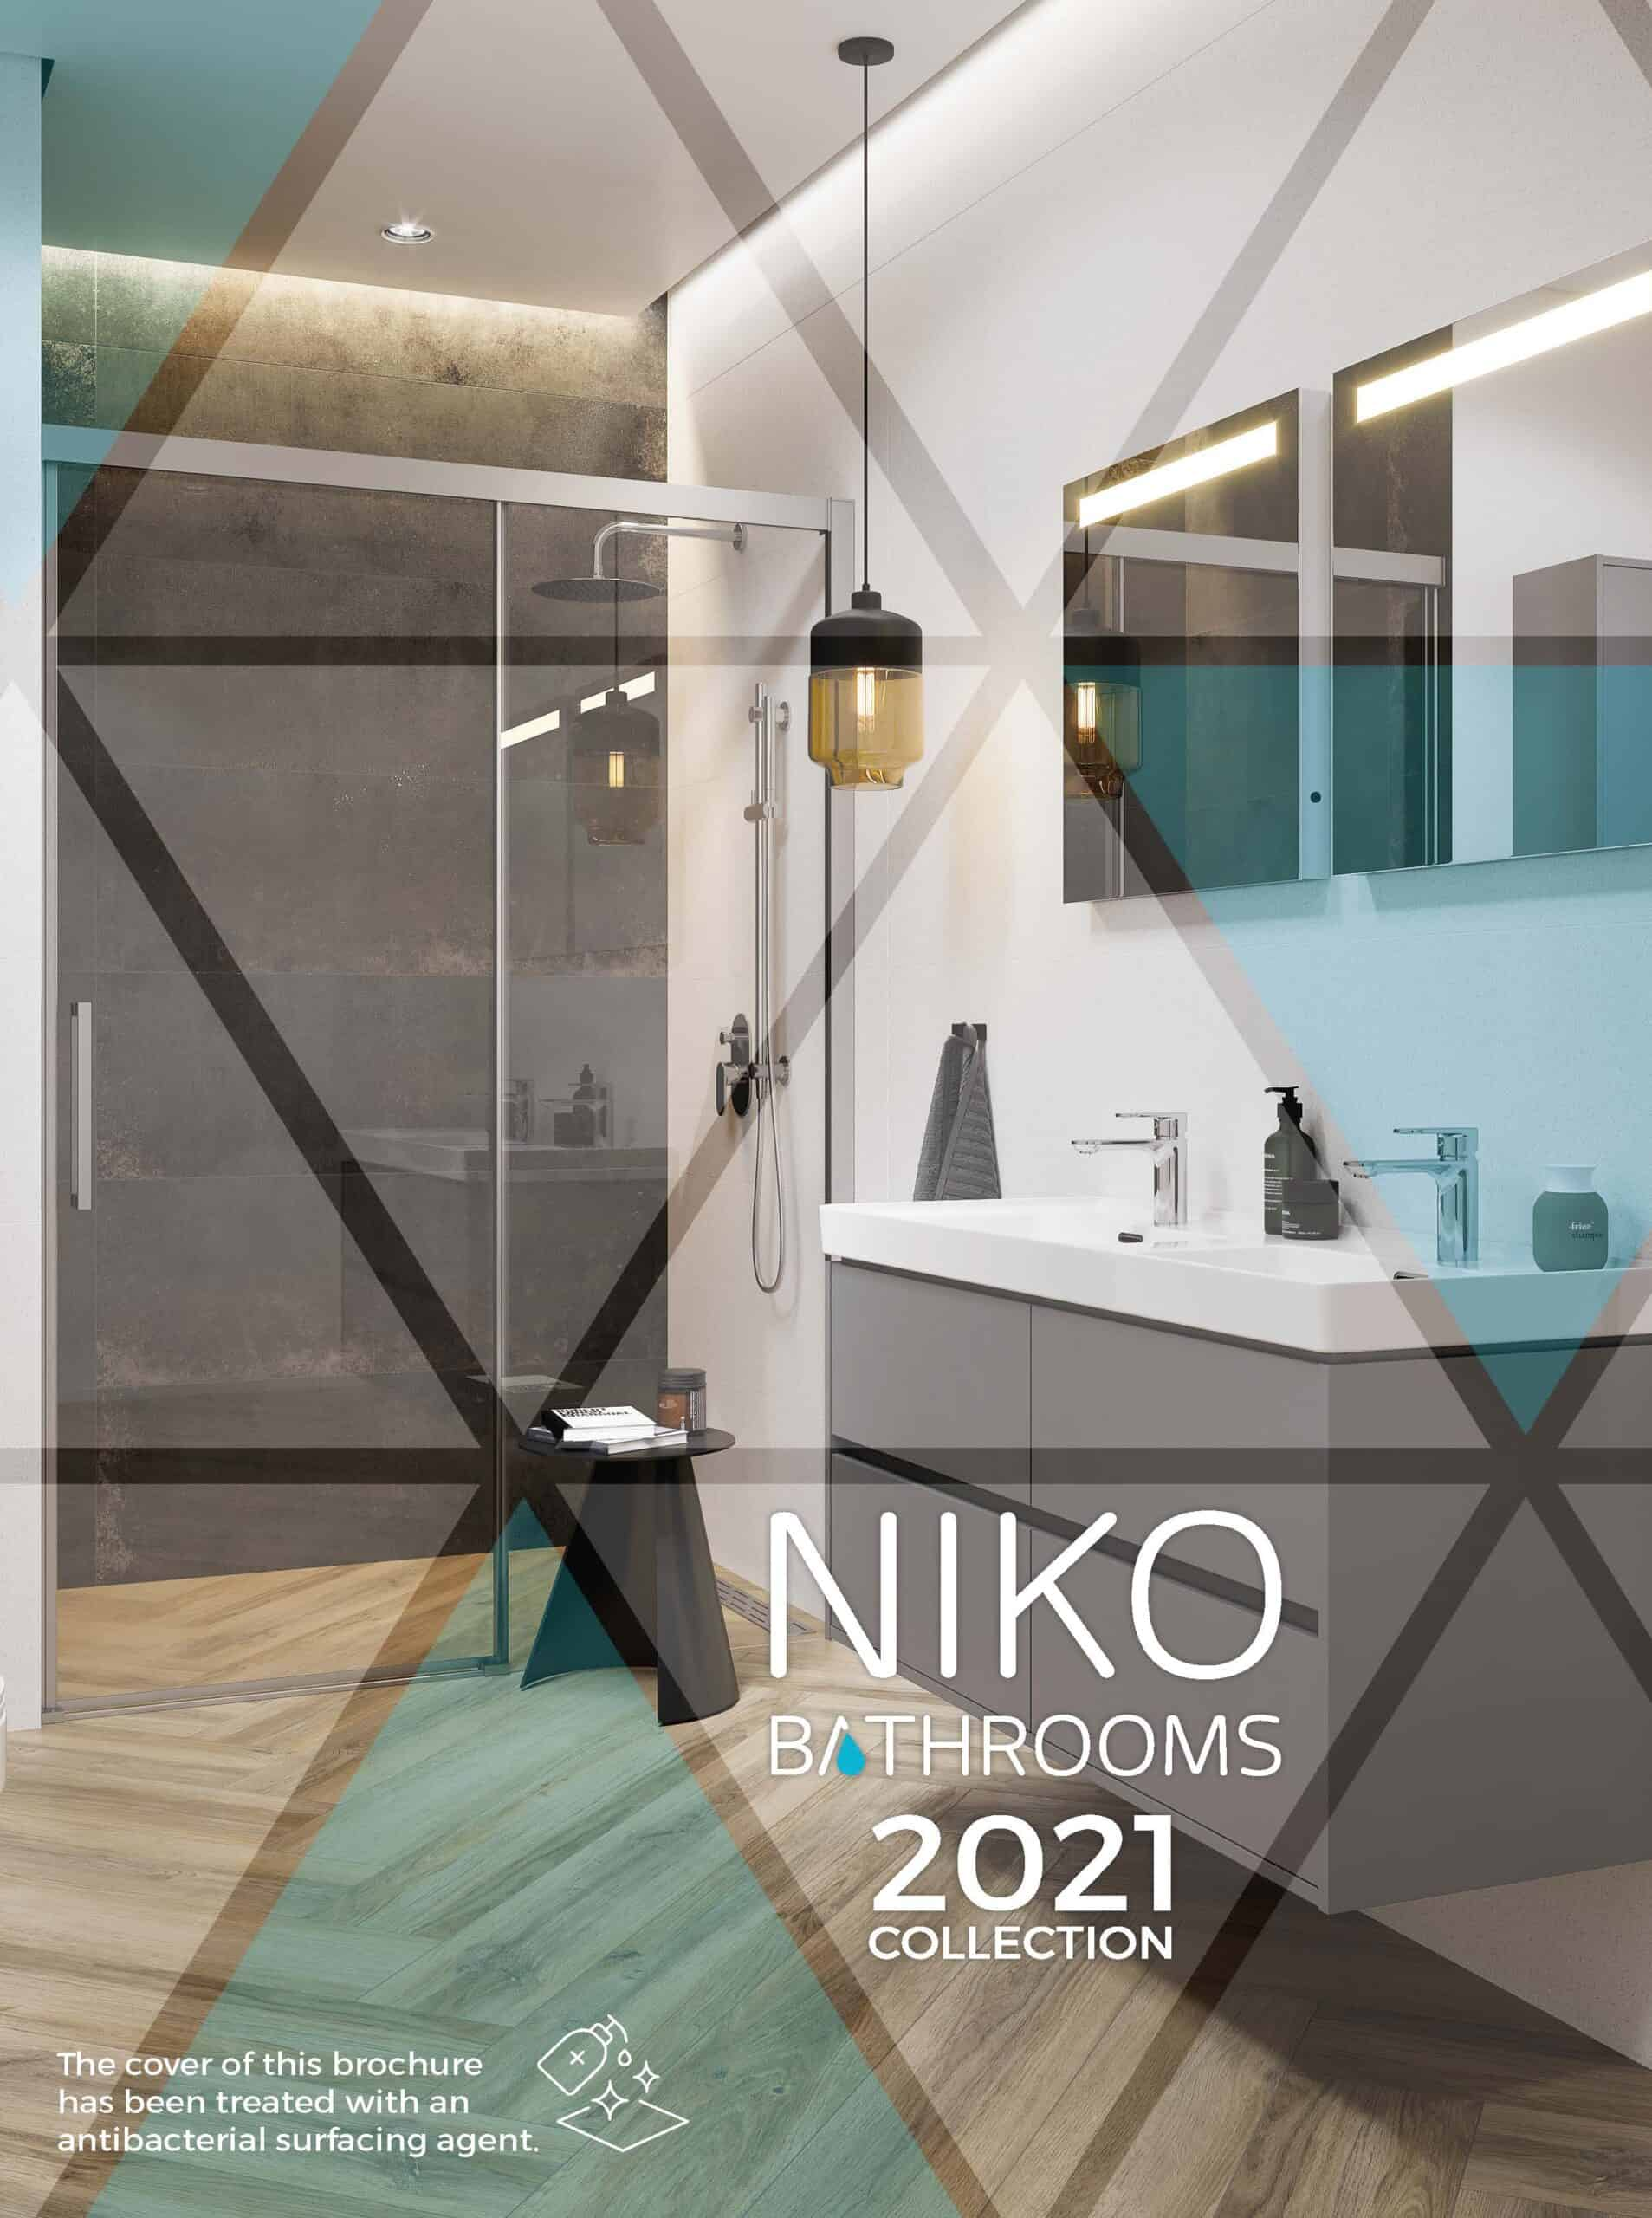 Niko Bathrooms 2021 Collection